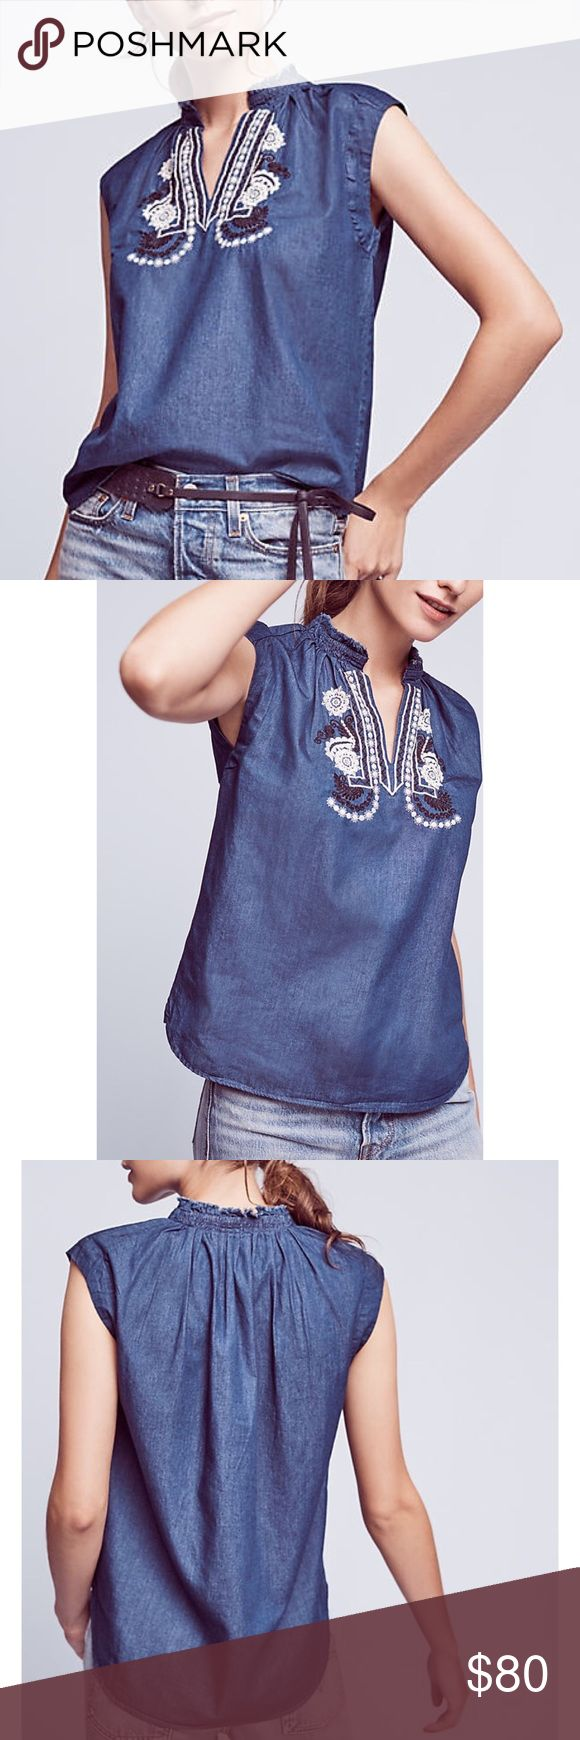 """Anthropologie Embroidered Chambray Top Anthropologie Ne Quittez Pas Embroidered Chambray top. Light weight 100% cotton chambray. Embroidered detail on front. Ruched neckline. Sleeveless. Rounded hem slightly longer in back. Underarm to underarm 20"""", length 25""""-27"""". Anthropologie Tops"""